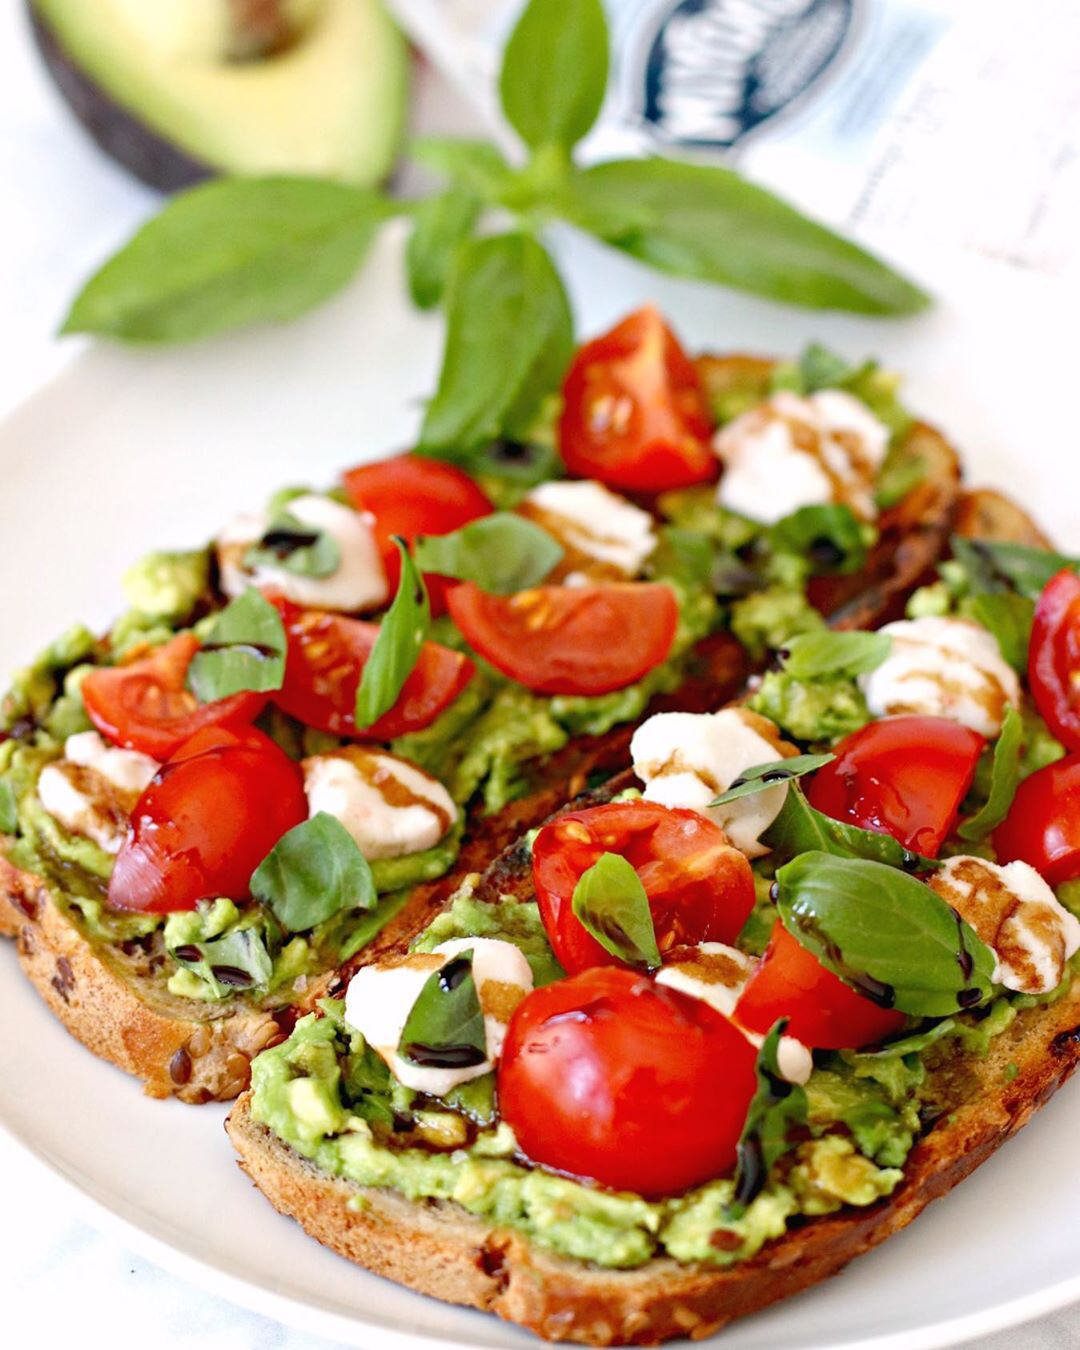 How To Follow The Mediterranean Diet For Better Health